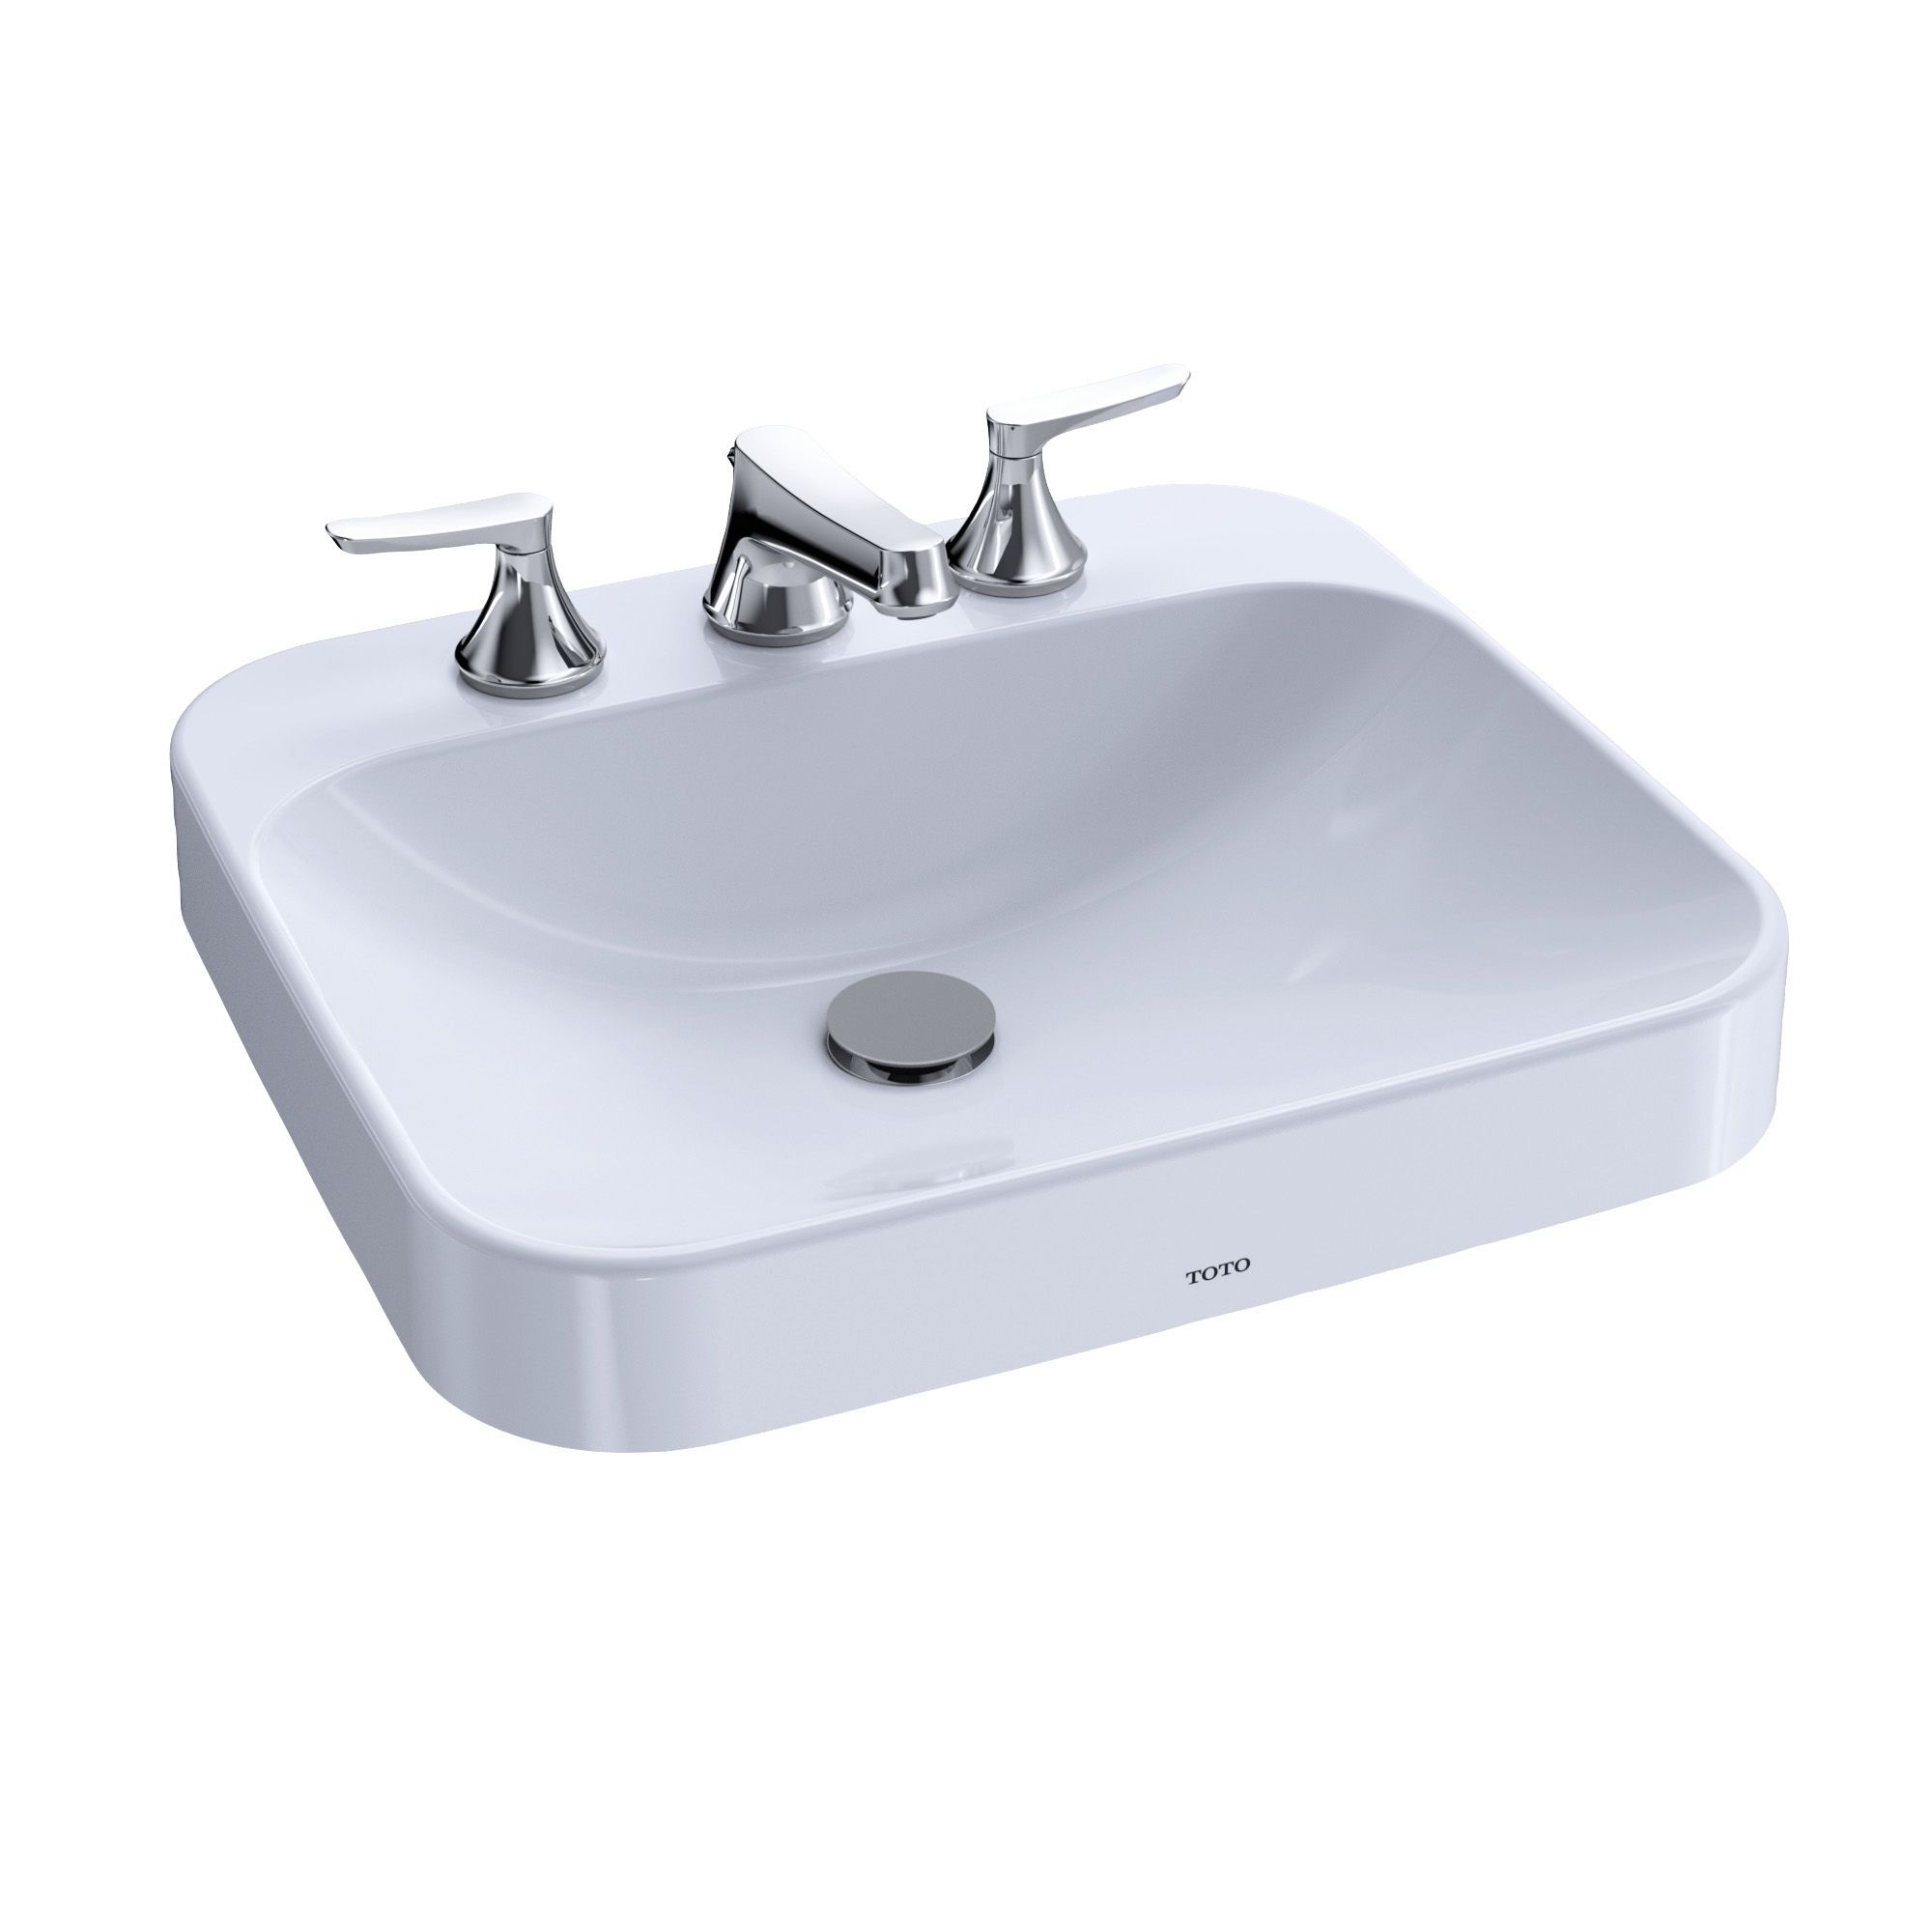 Toto Arvina Rectangular 20 Vessel Bathroom Sink With Cefiontect